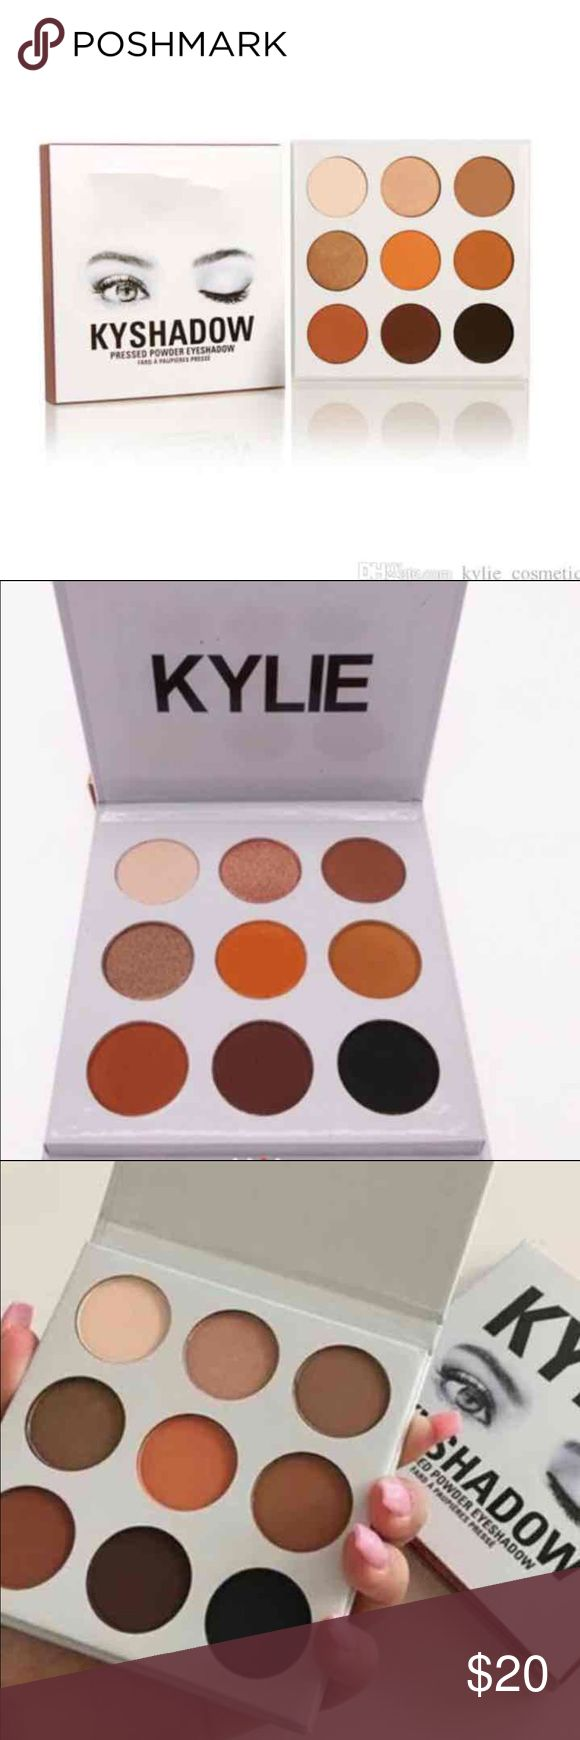 kylie bronze shadow palette new kylie kyshadow makeup palette fast shipping - Martine Mah Coloration